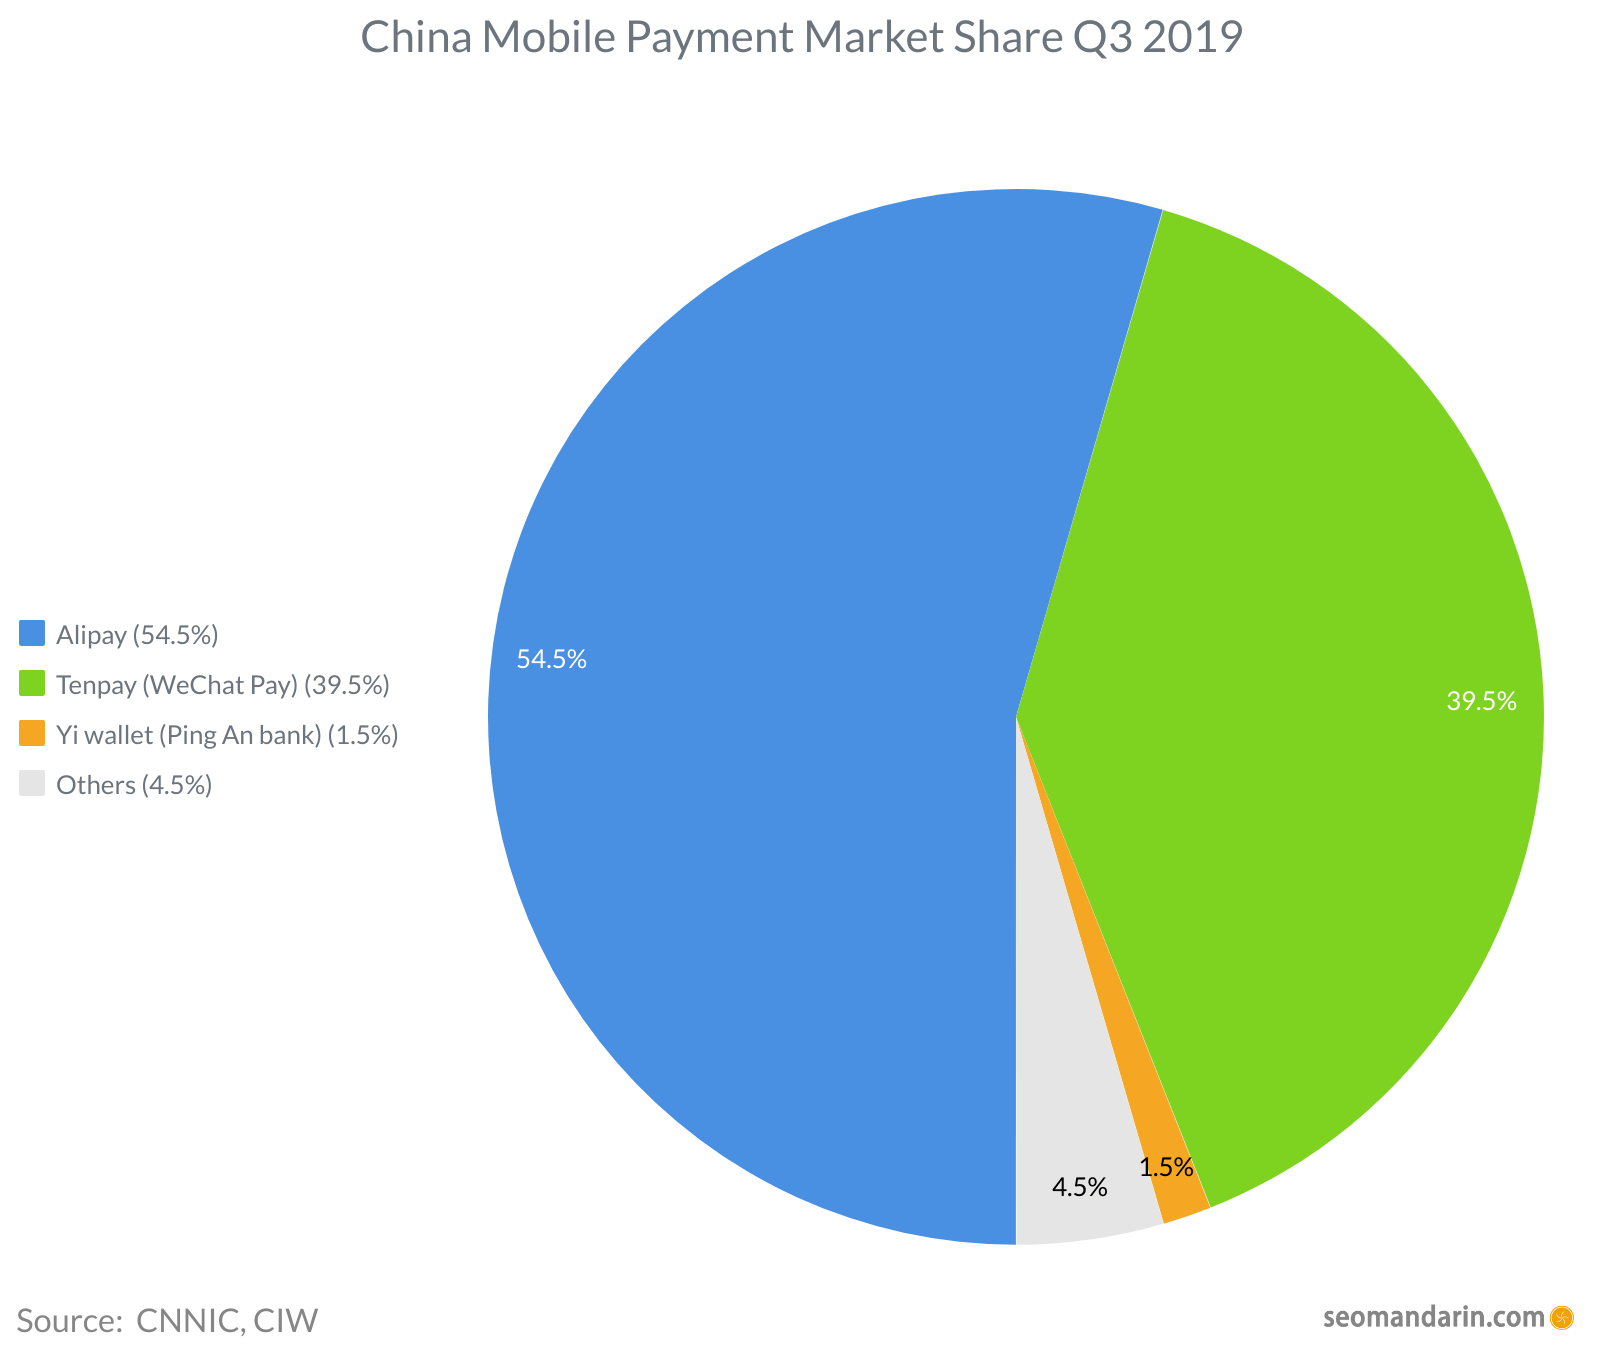 China Mobile Payment Market Share 2019 Q3